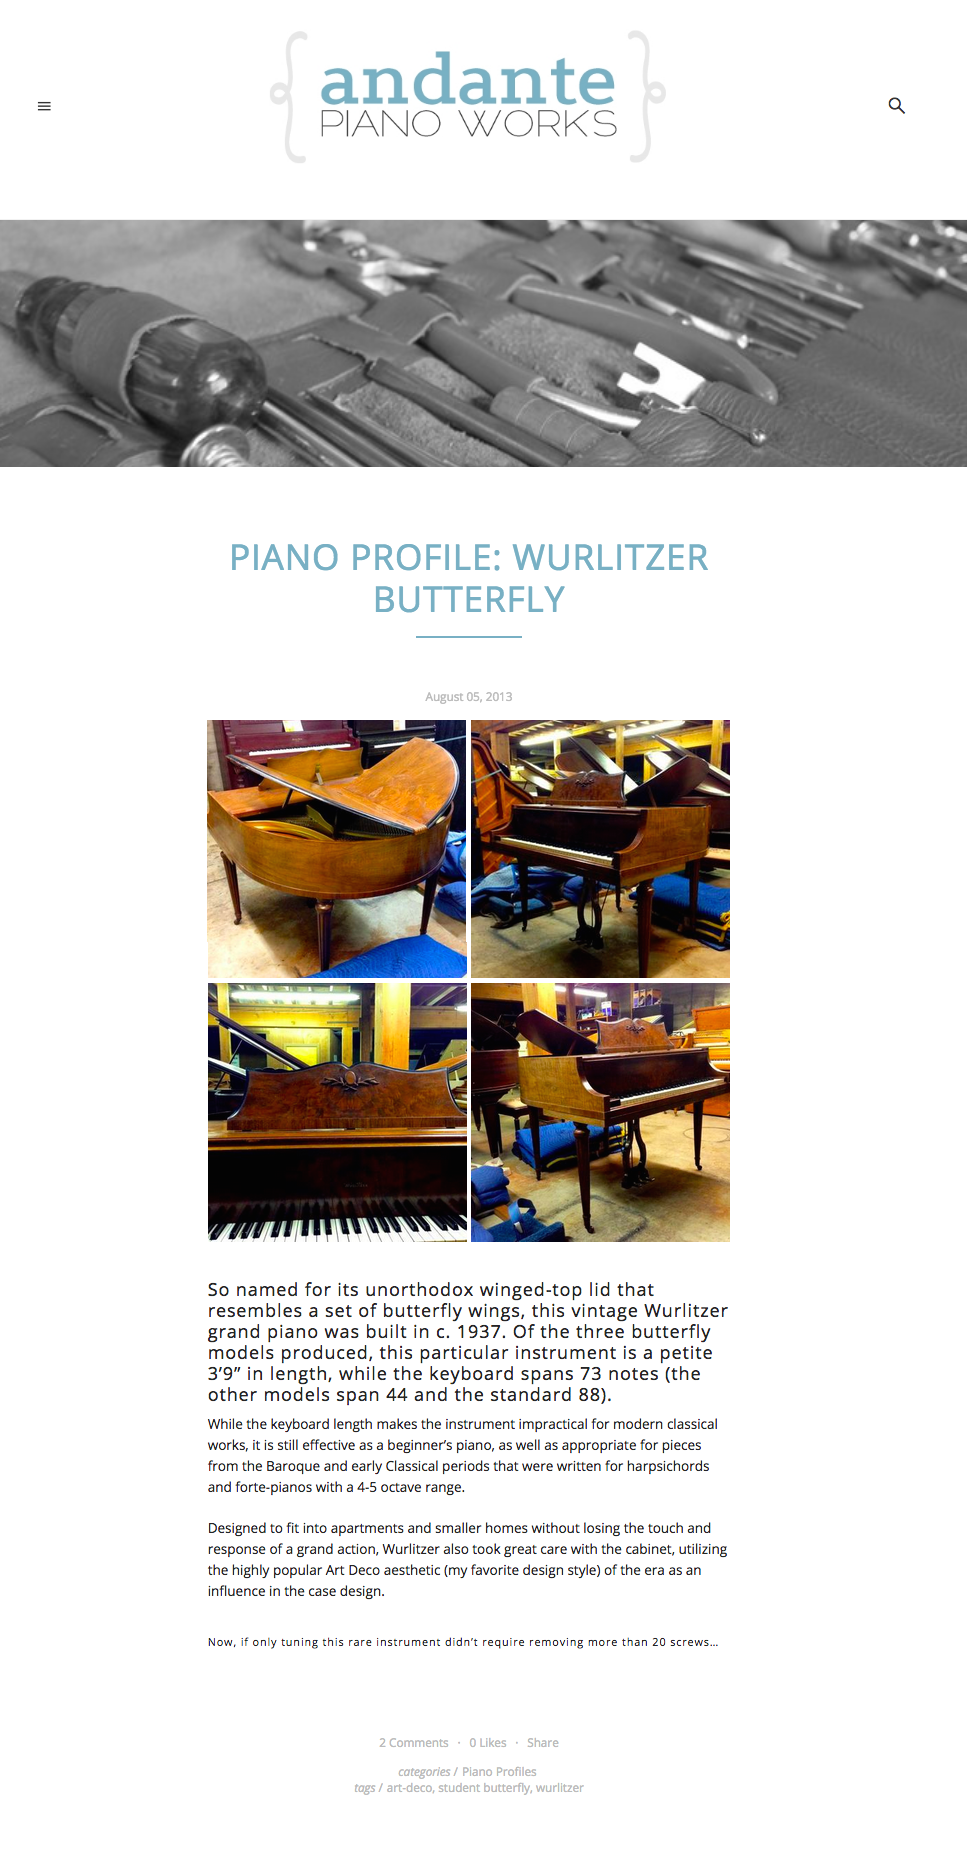 Andante Piano Works - Blog